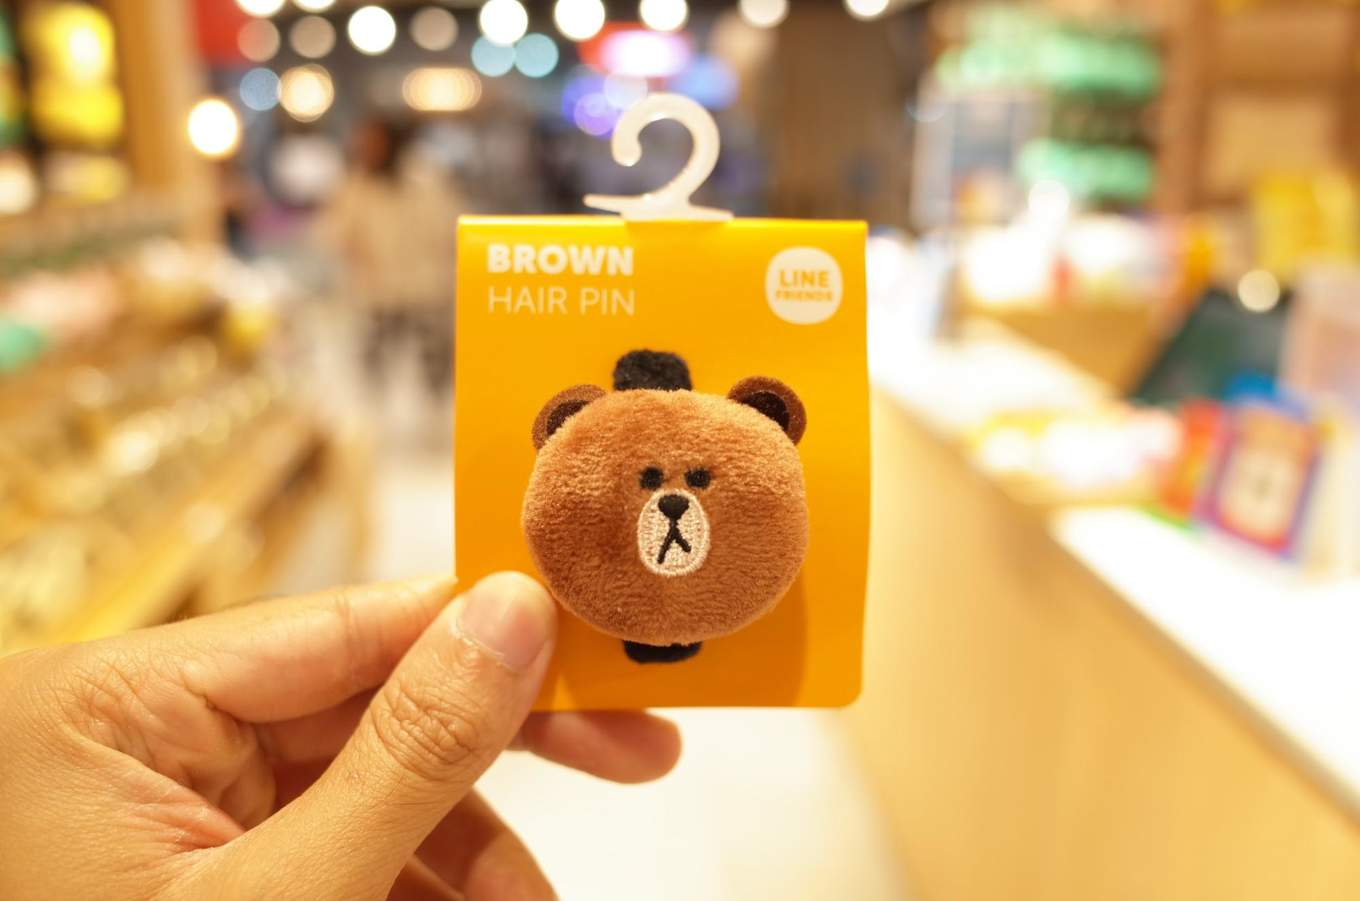 Brown hair pin from the LINE Store in Bangkok